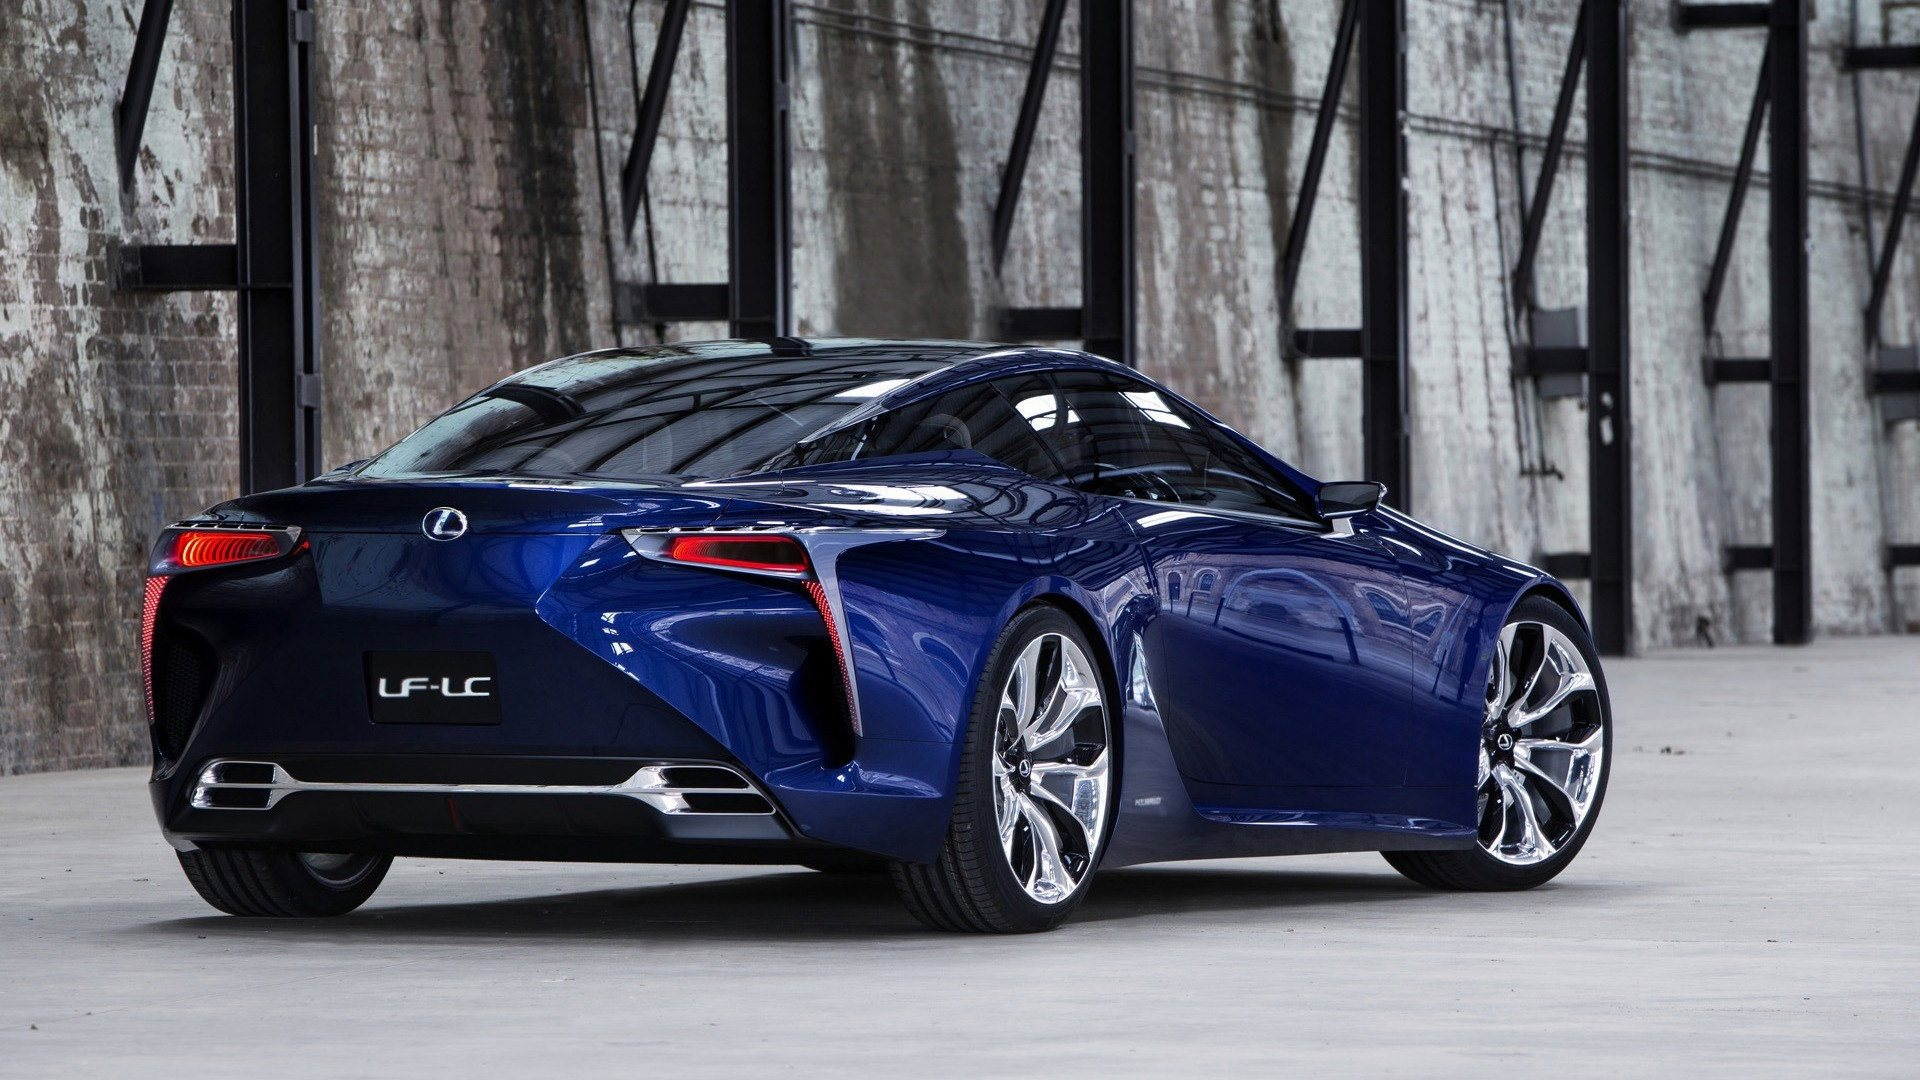 lexus lf lc wallpaper background